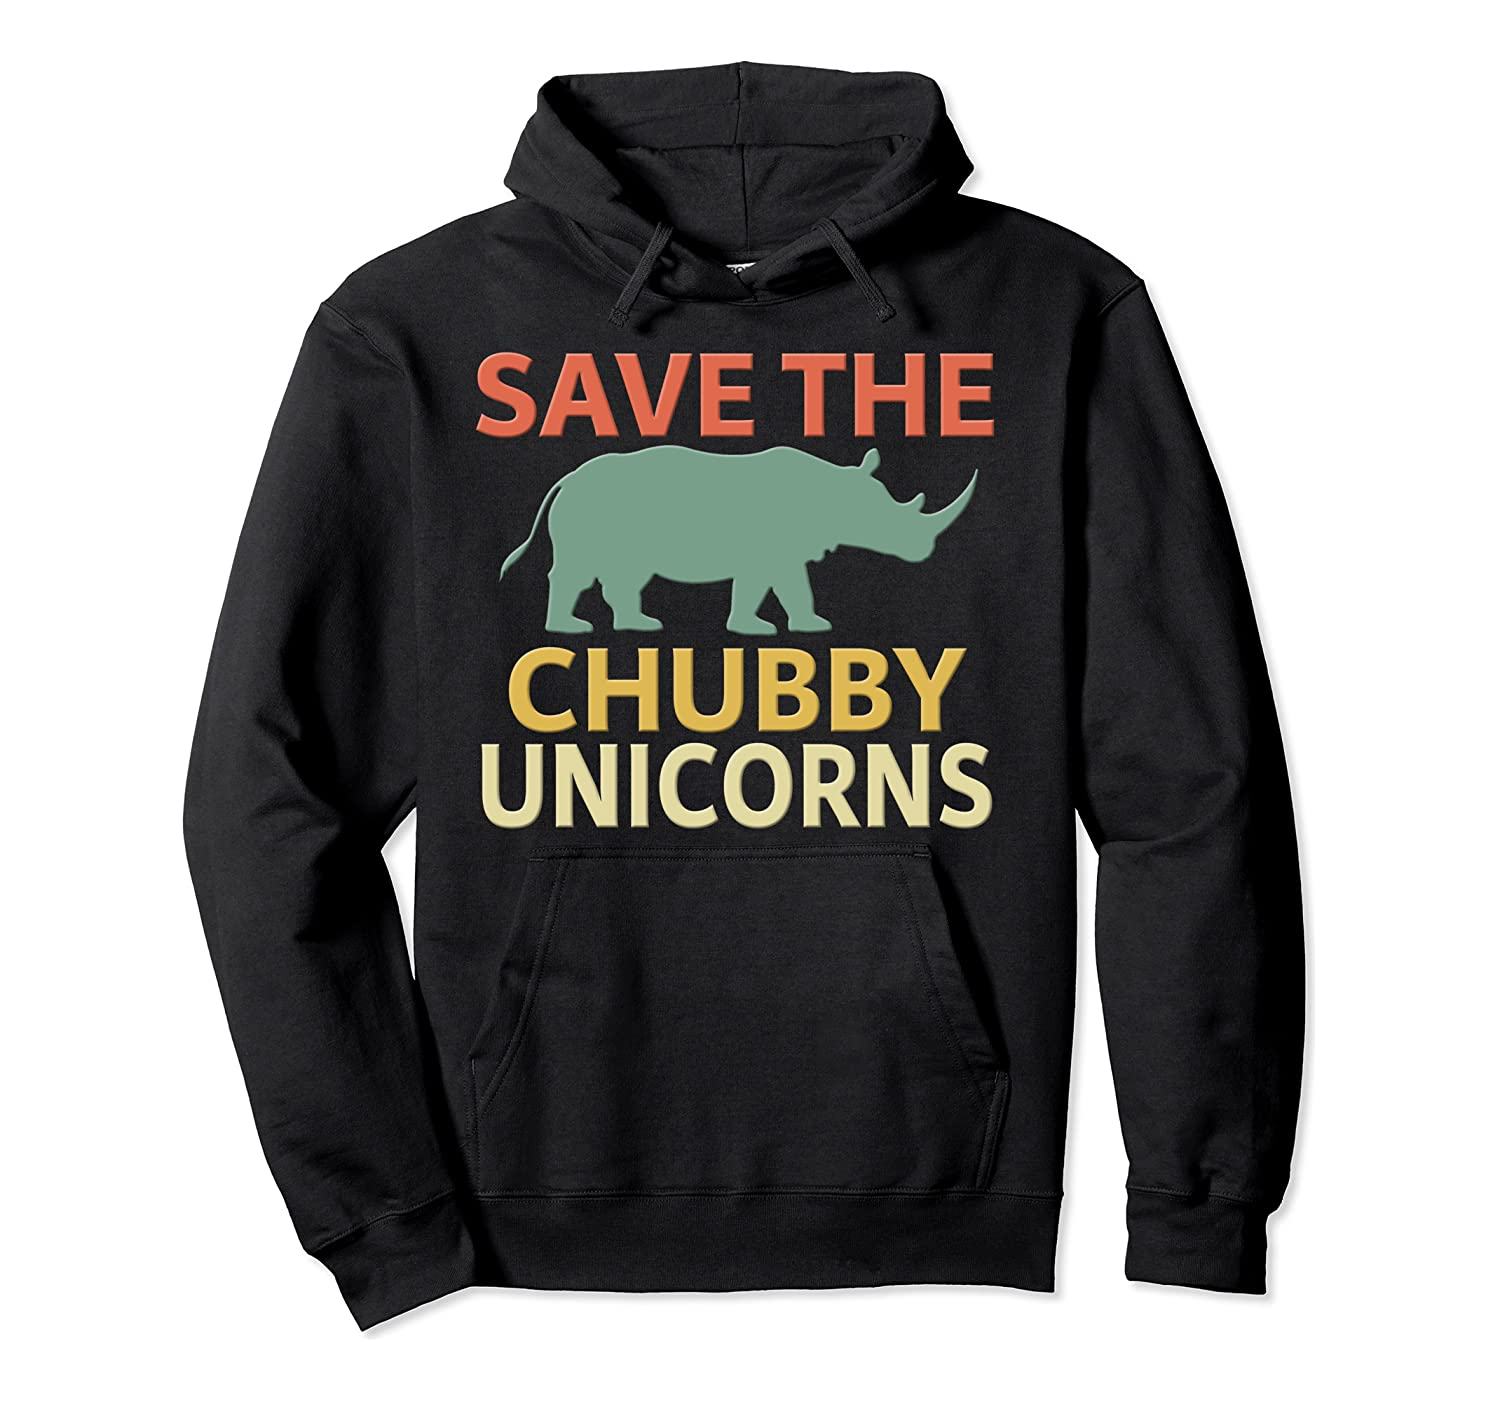 Save The Chubby Unicorns Pullover Hoodie. Vintage Rhino